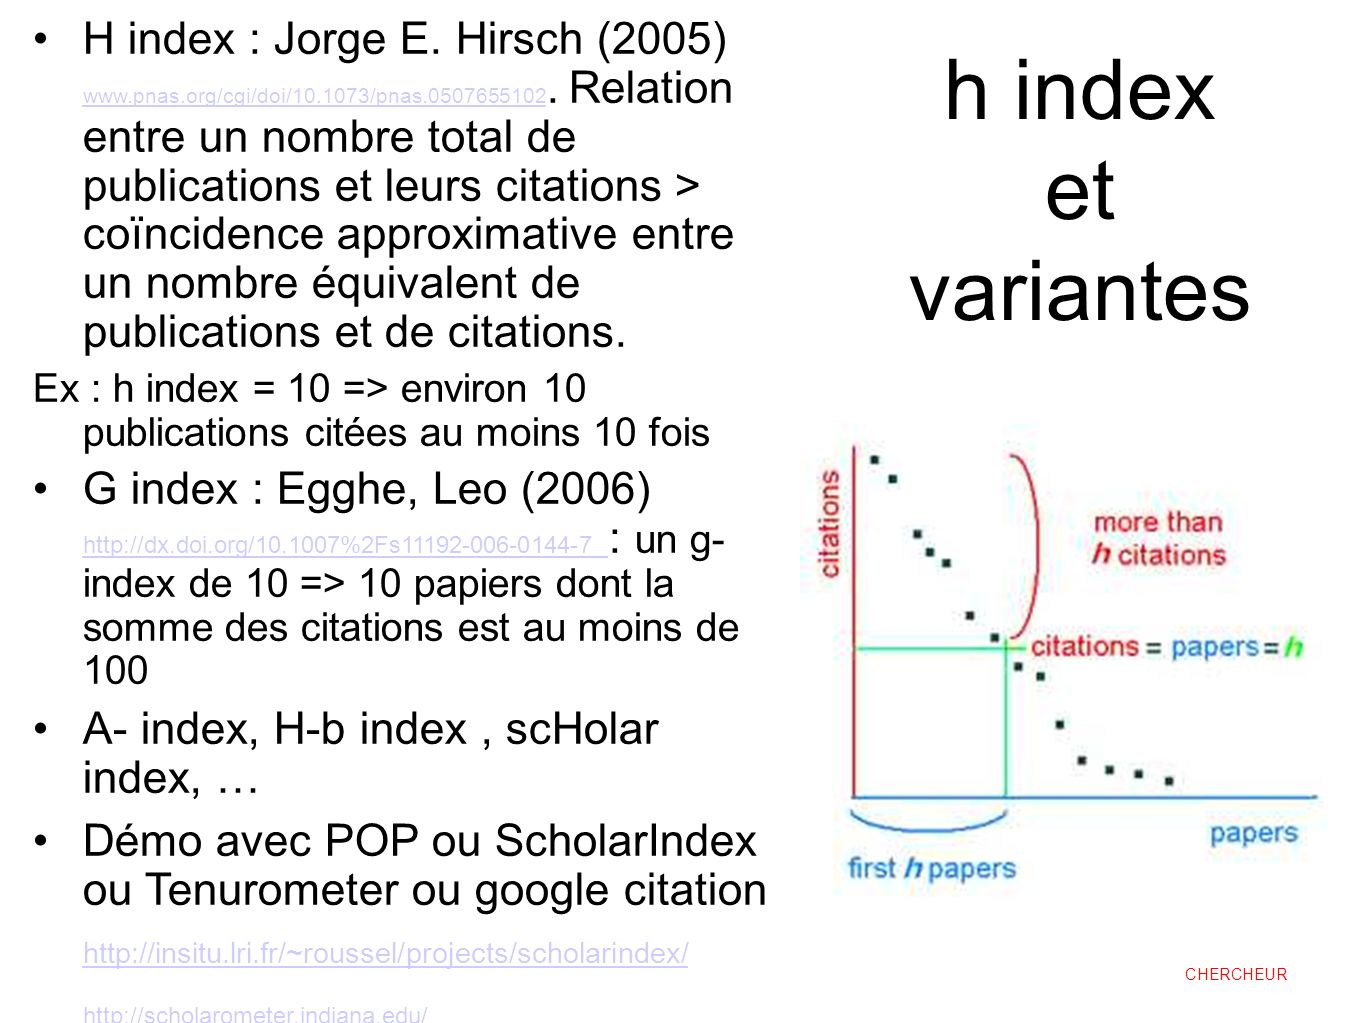 H index : Jorge E. Hirsch (2005) www. pnas. org/cgi/doi/ /pnas